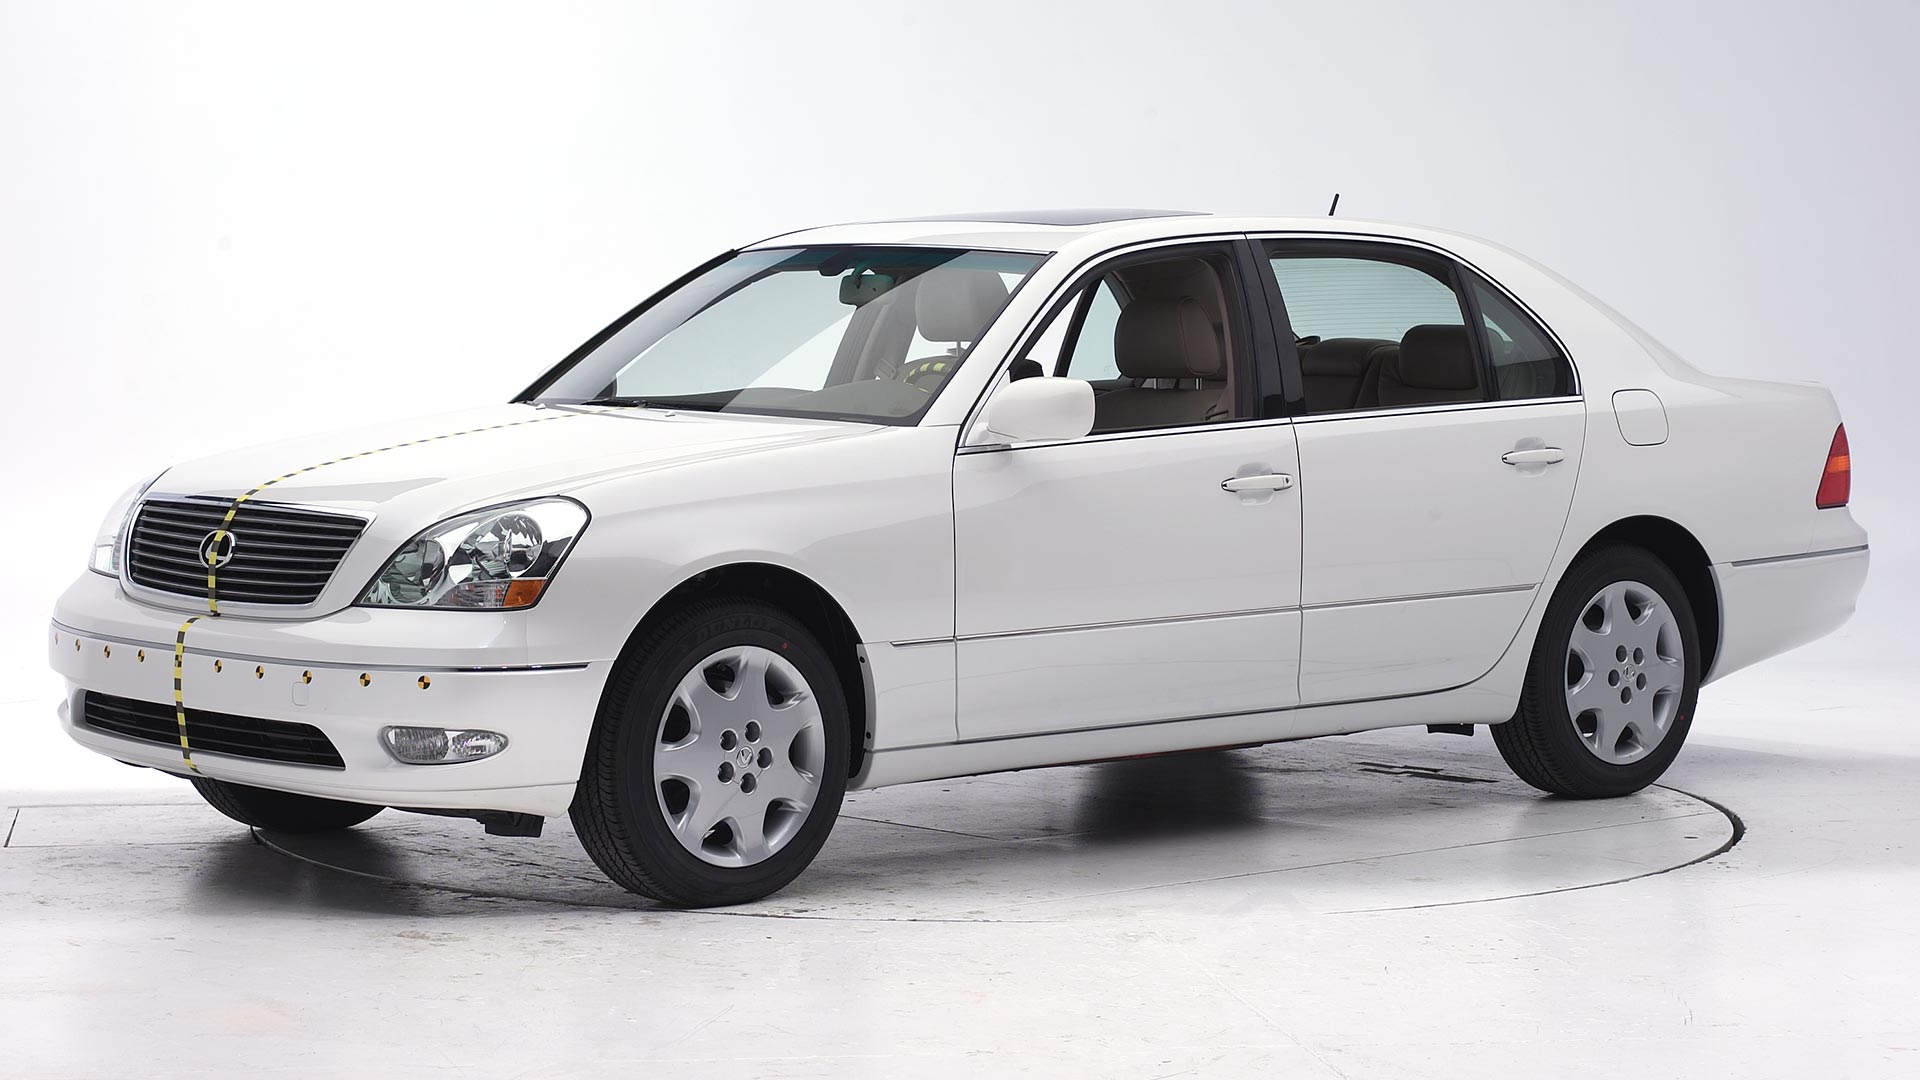 2004 Lexus LS 4-door sedan